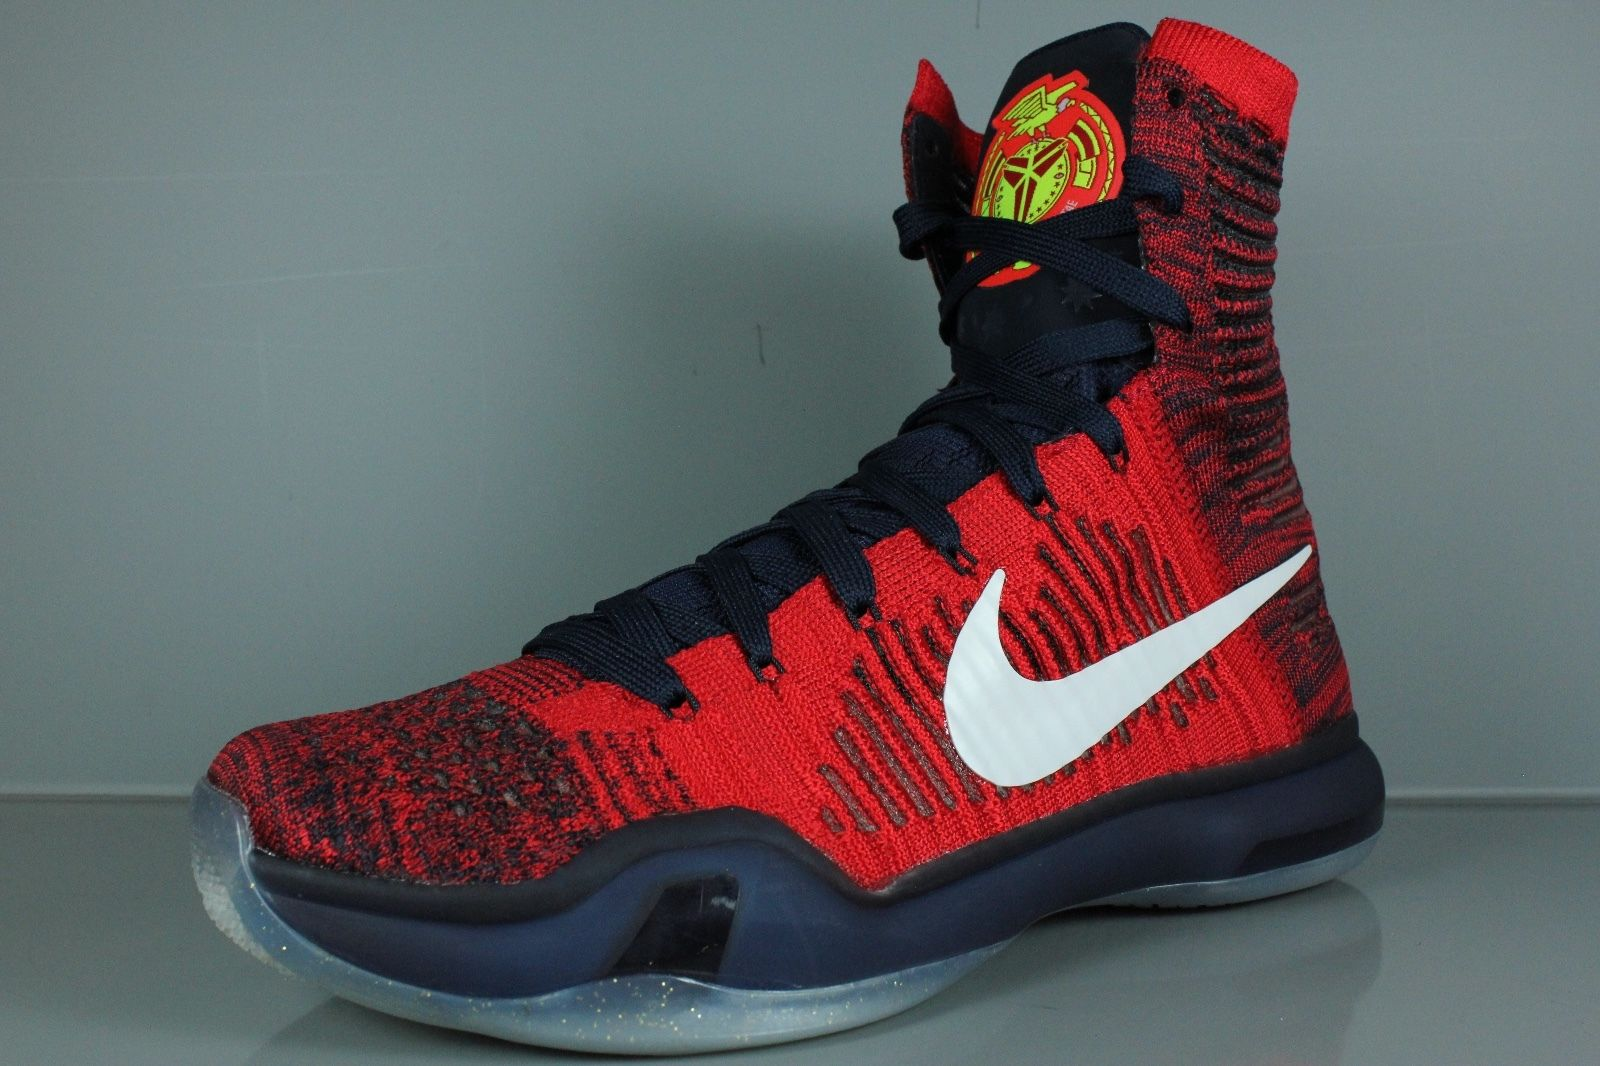 wholesale dealer c6200 b56c5 Nike Kobe 10 Elite High University Red • KicksOnFire.com